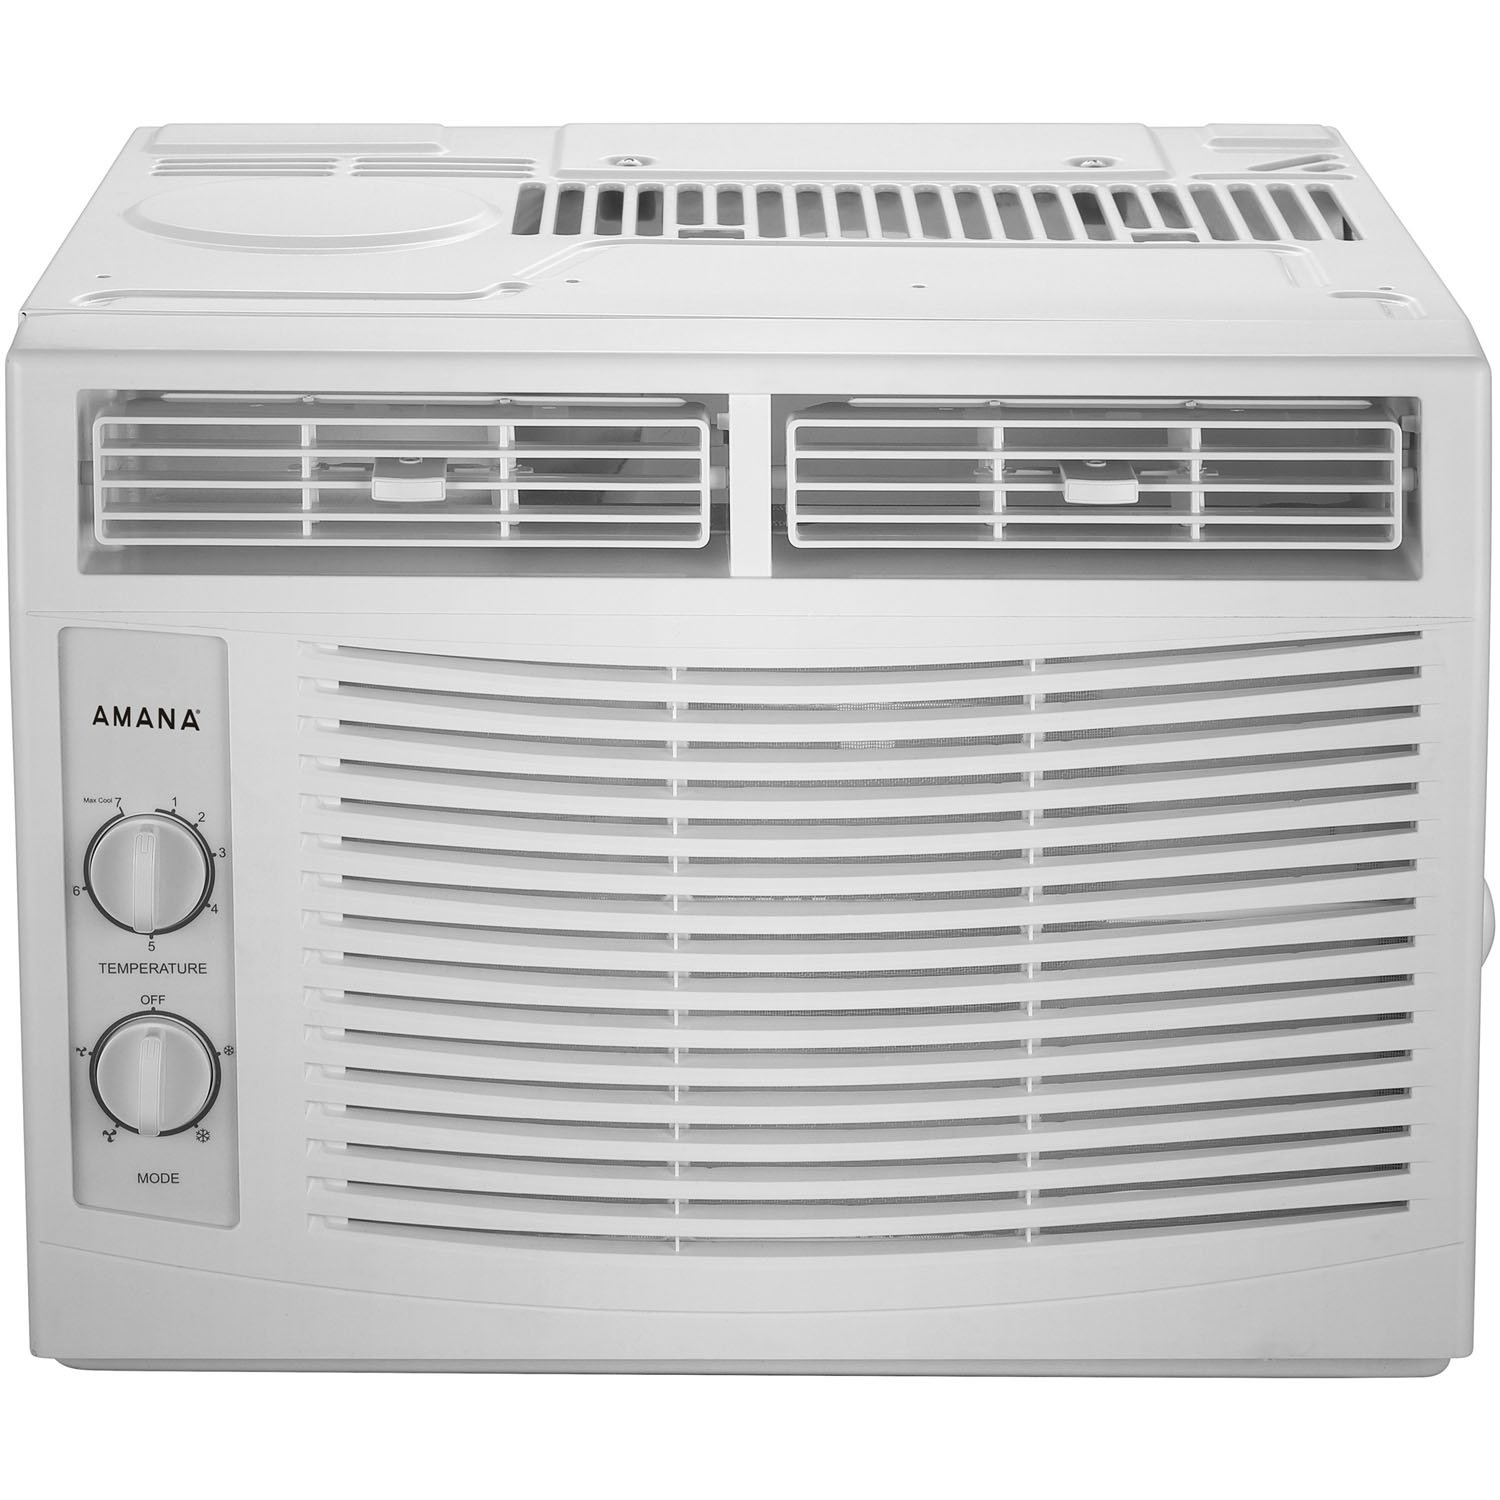 AMANA 5,000 BTU 115V Window-Mounted Air Conditioner with Mechanical Controls, White by AMANA